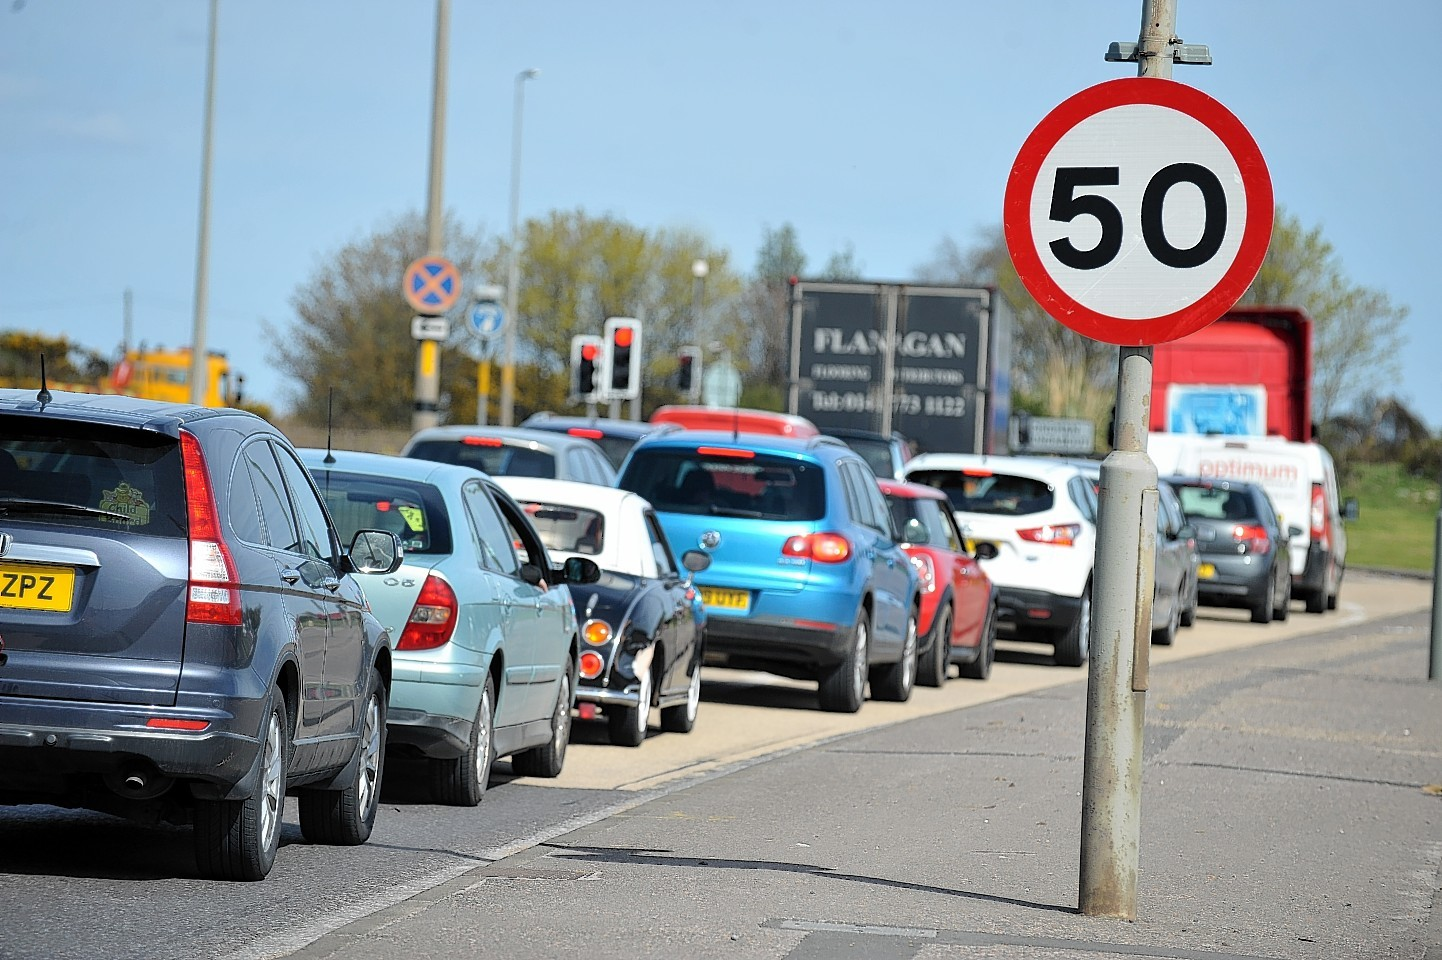 Traffic queuing at the Longman roundabout, Inverness.